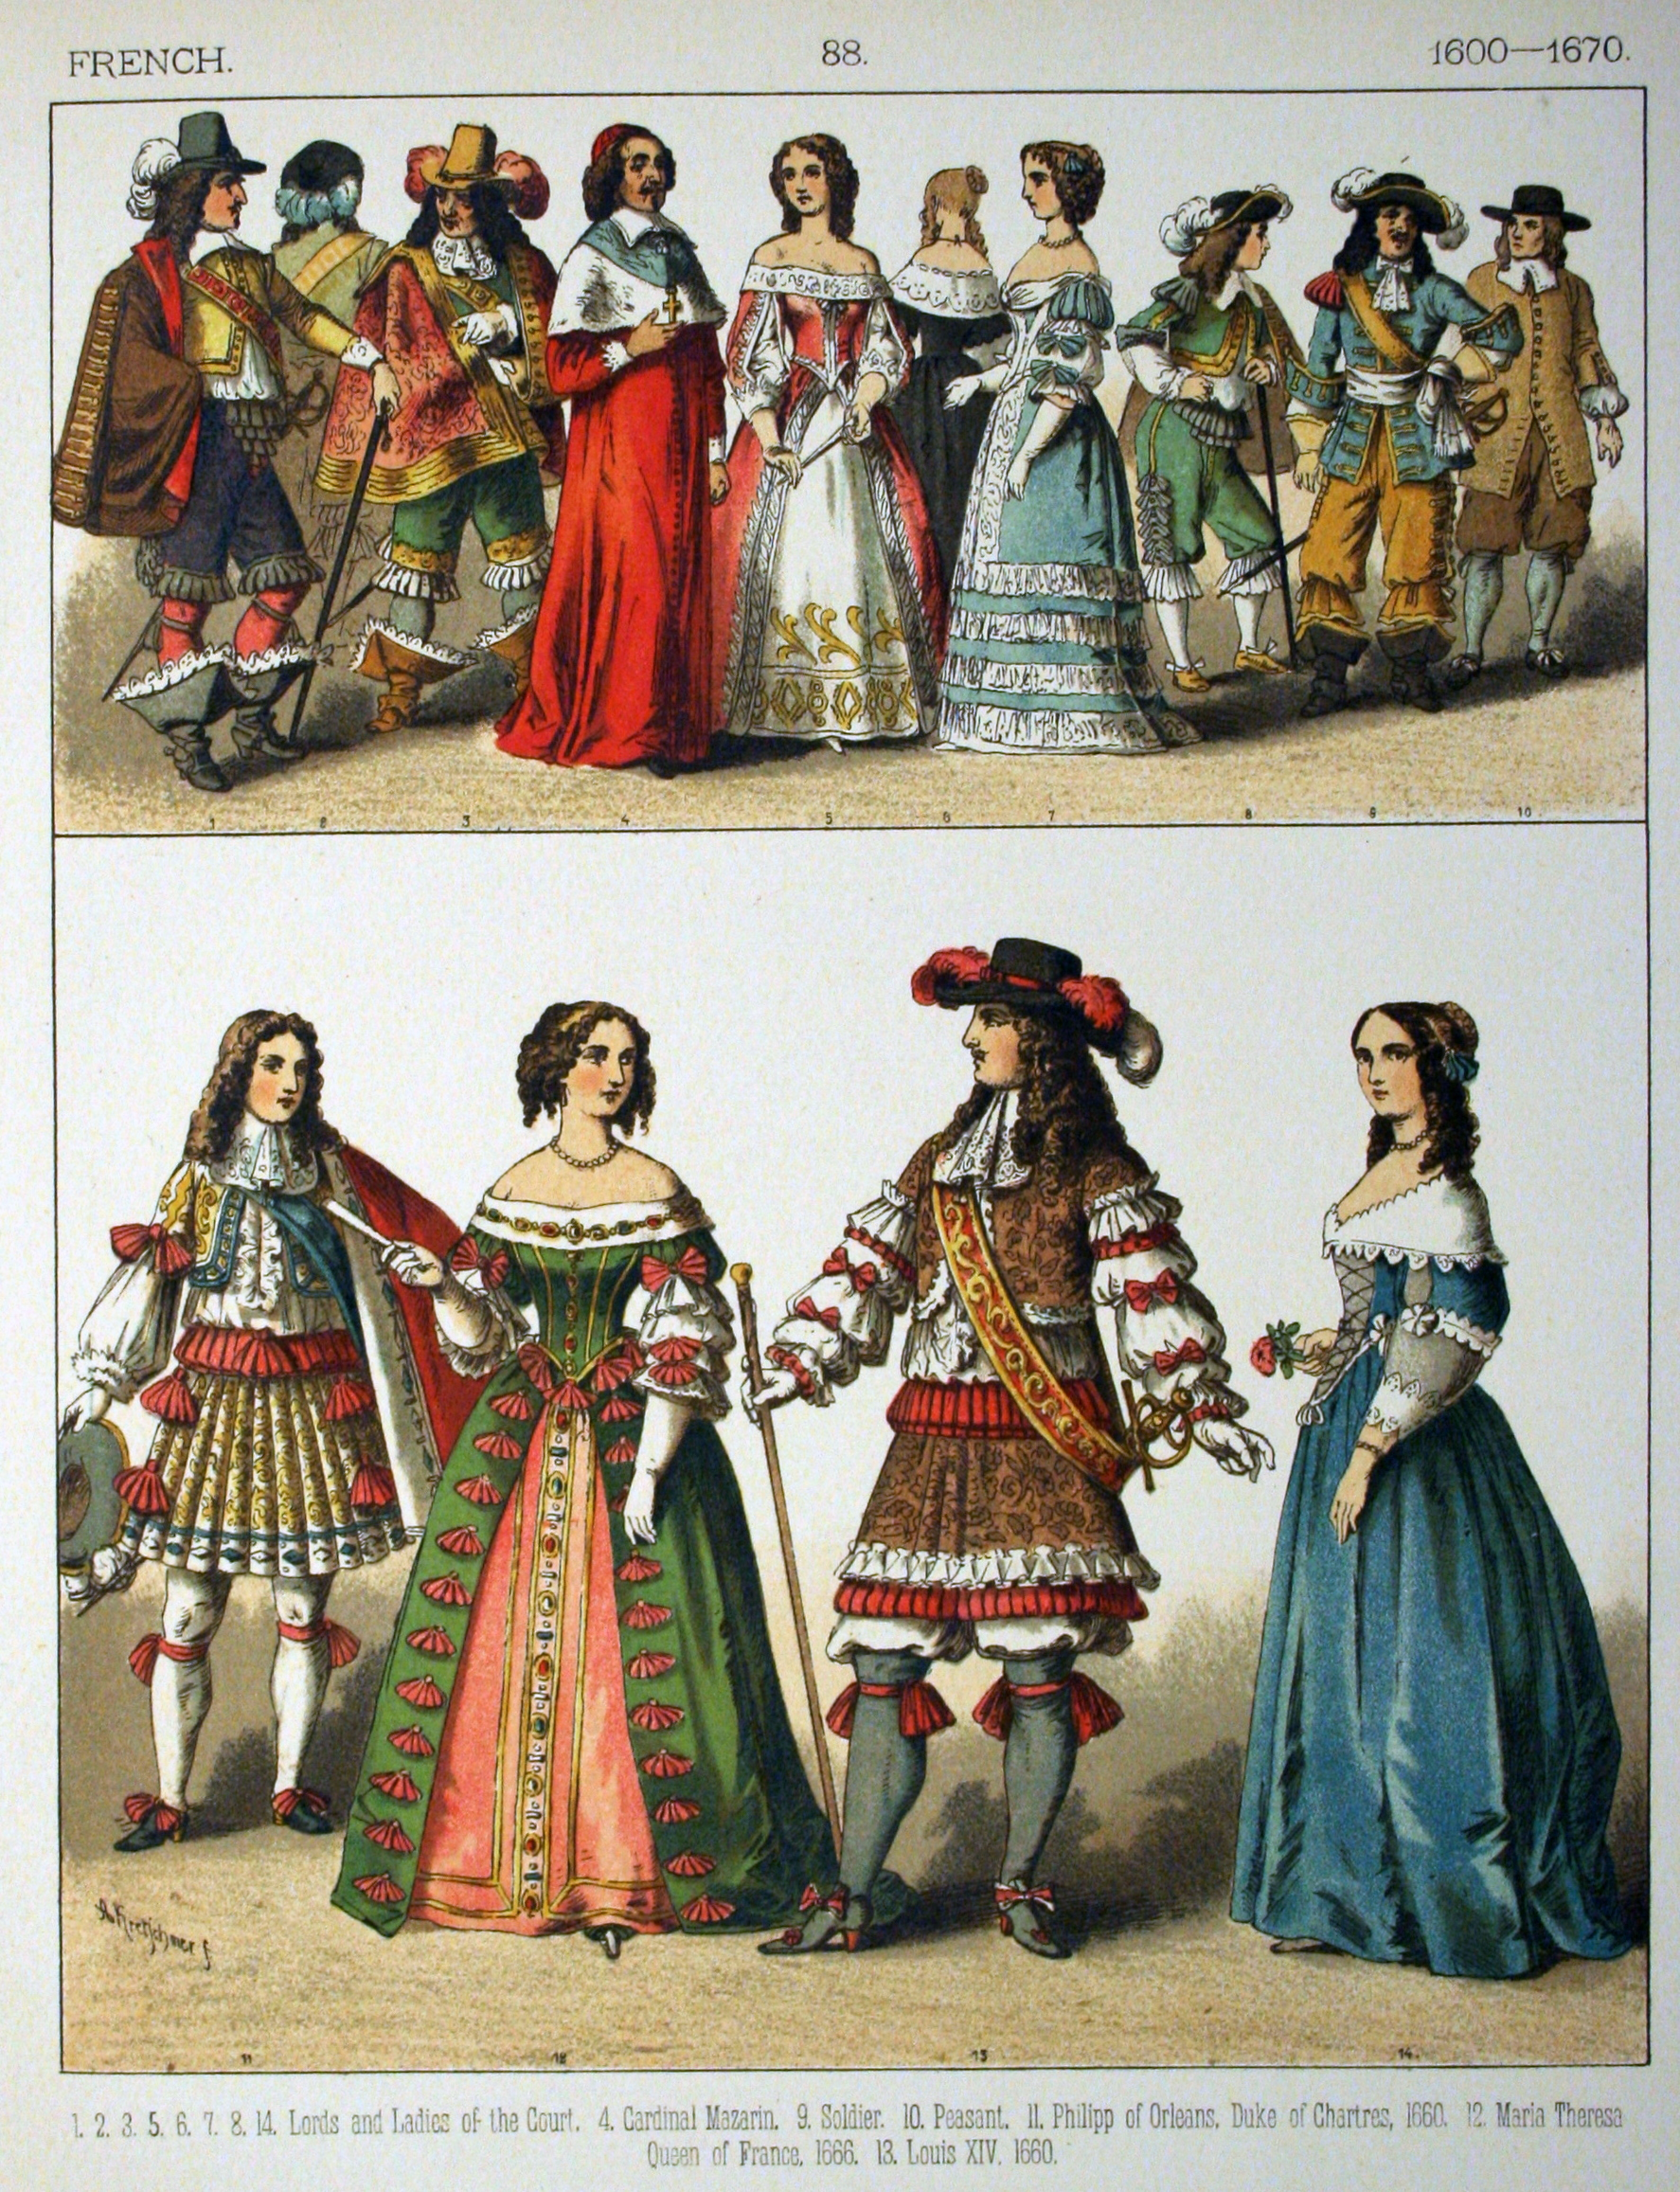 File:1600-1670 French. - 088 - Costumes of All Nations ...